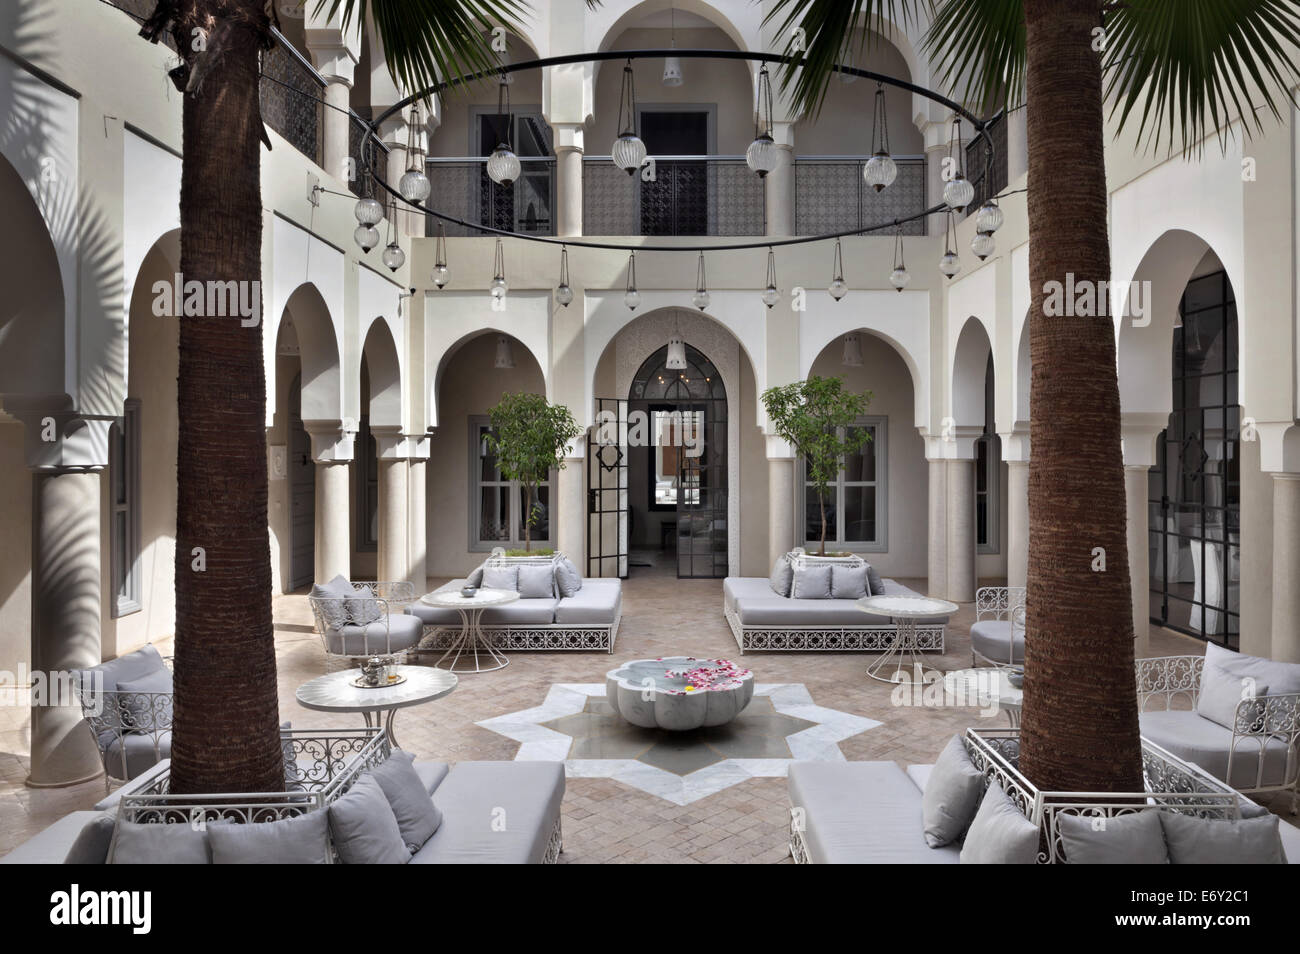 Courtyard riad nashira marrakech morocco stock photo royalty free image - Photo riad marrakech ...